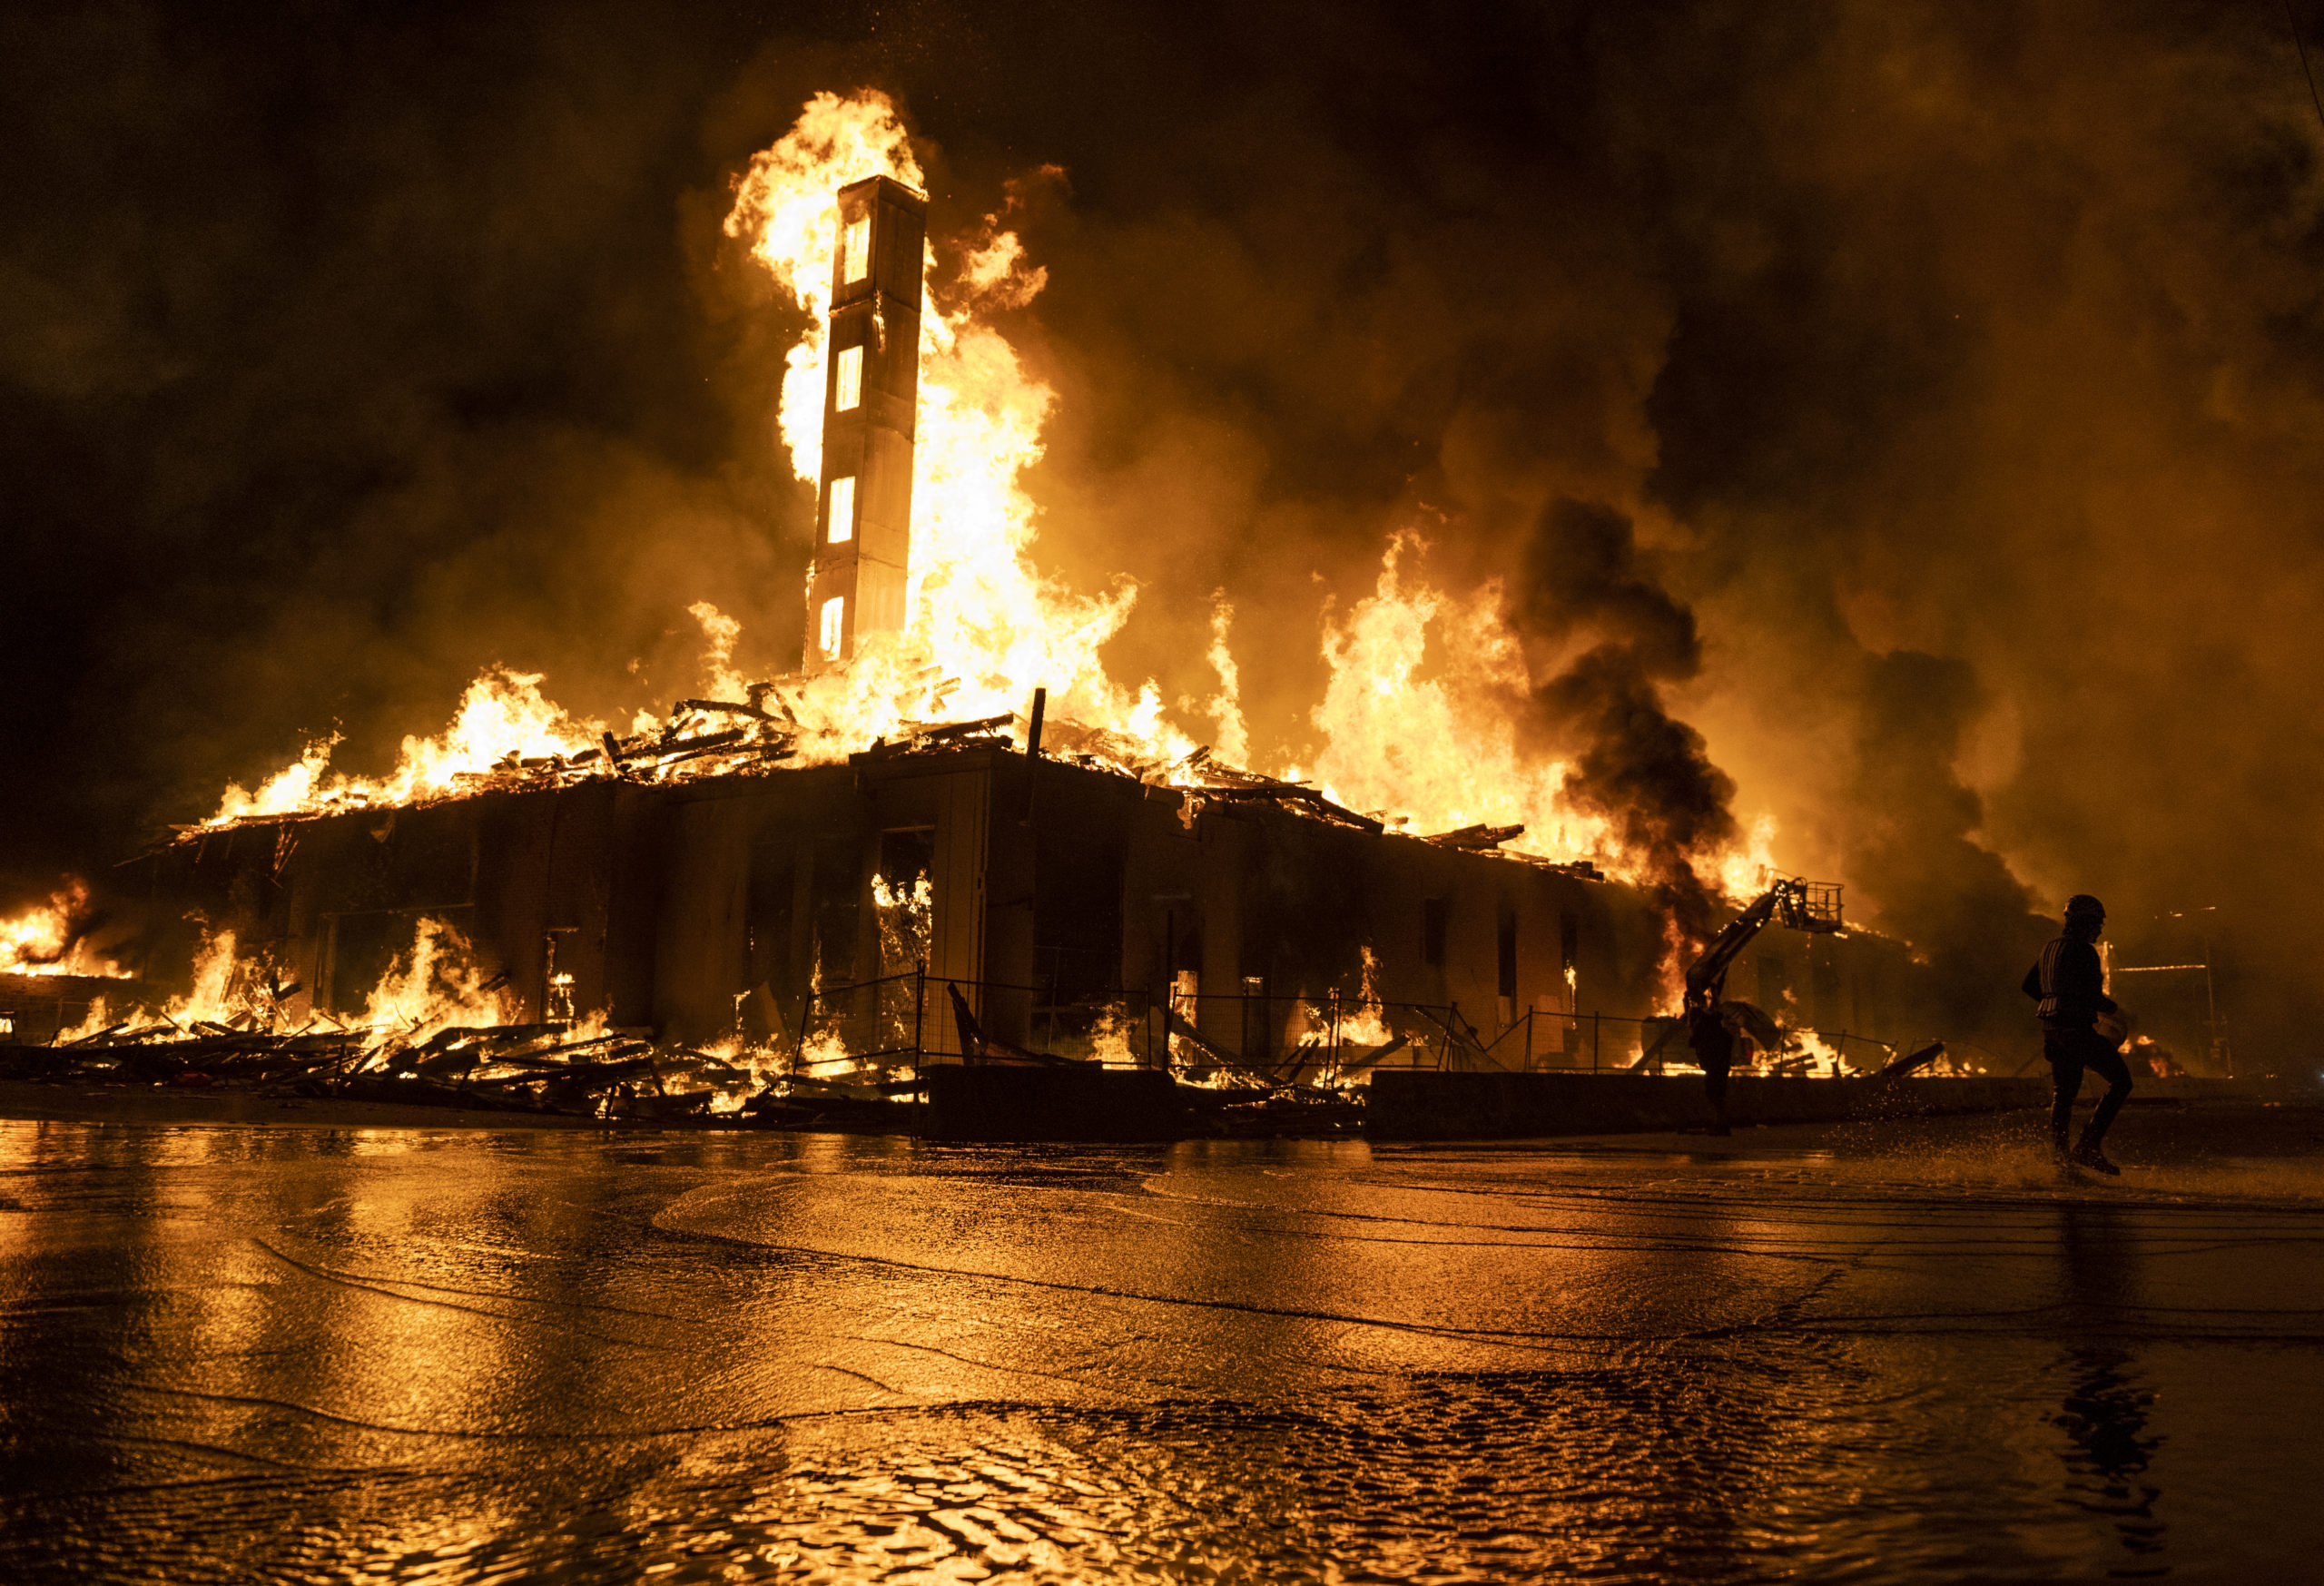 A construction site burns in a large fire near the Third Police Precinct on May 27, 2020 in Minneapolis, Minnesota. (Stephen Maturen/Getty Images)